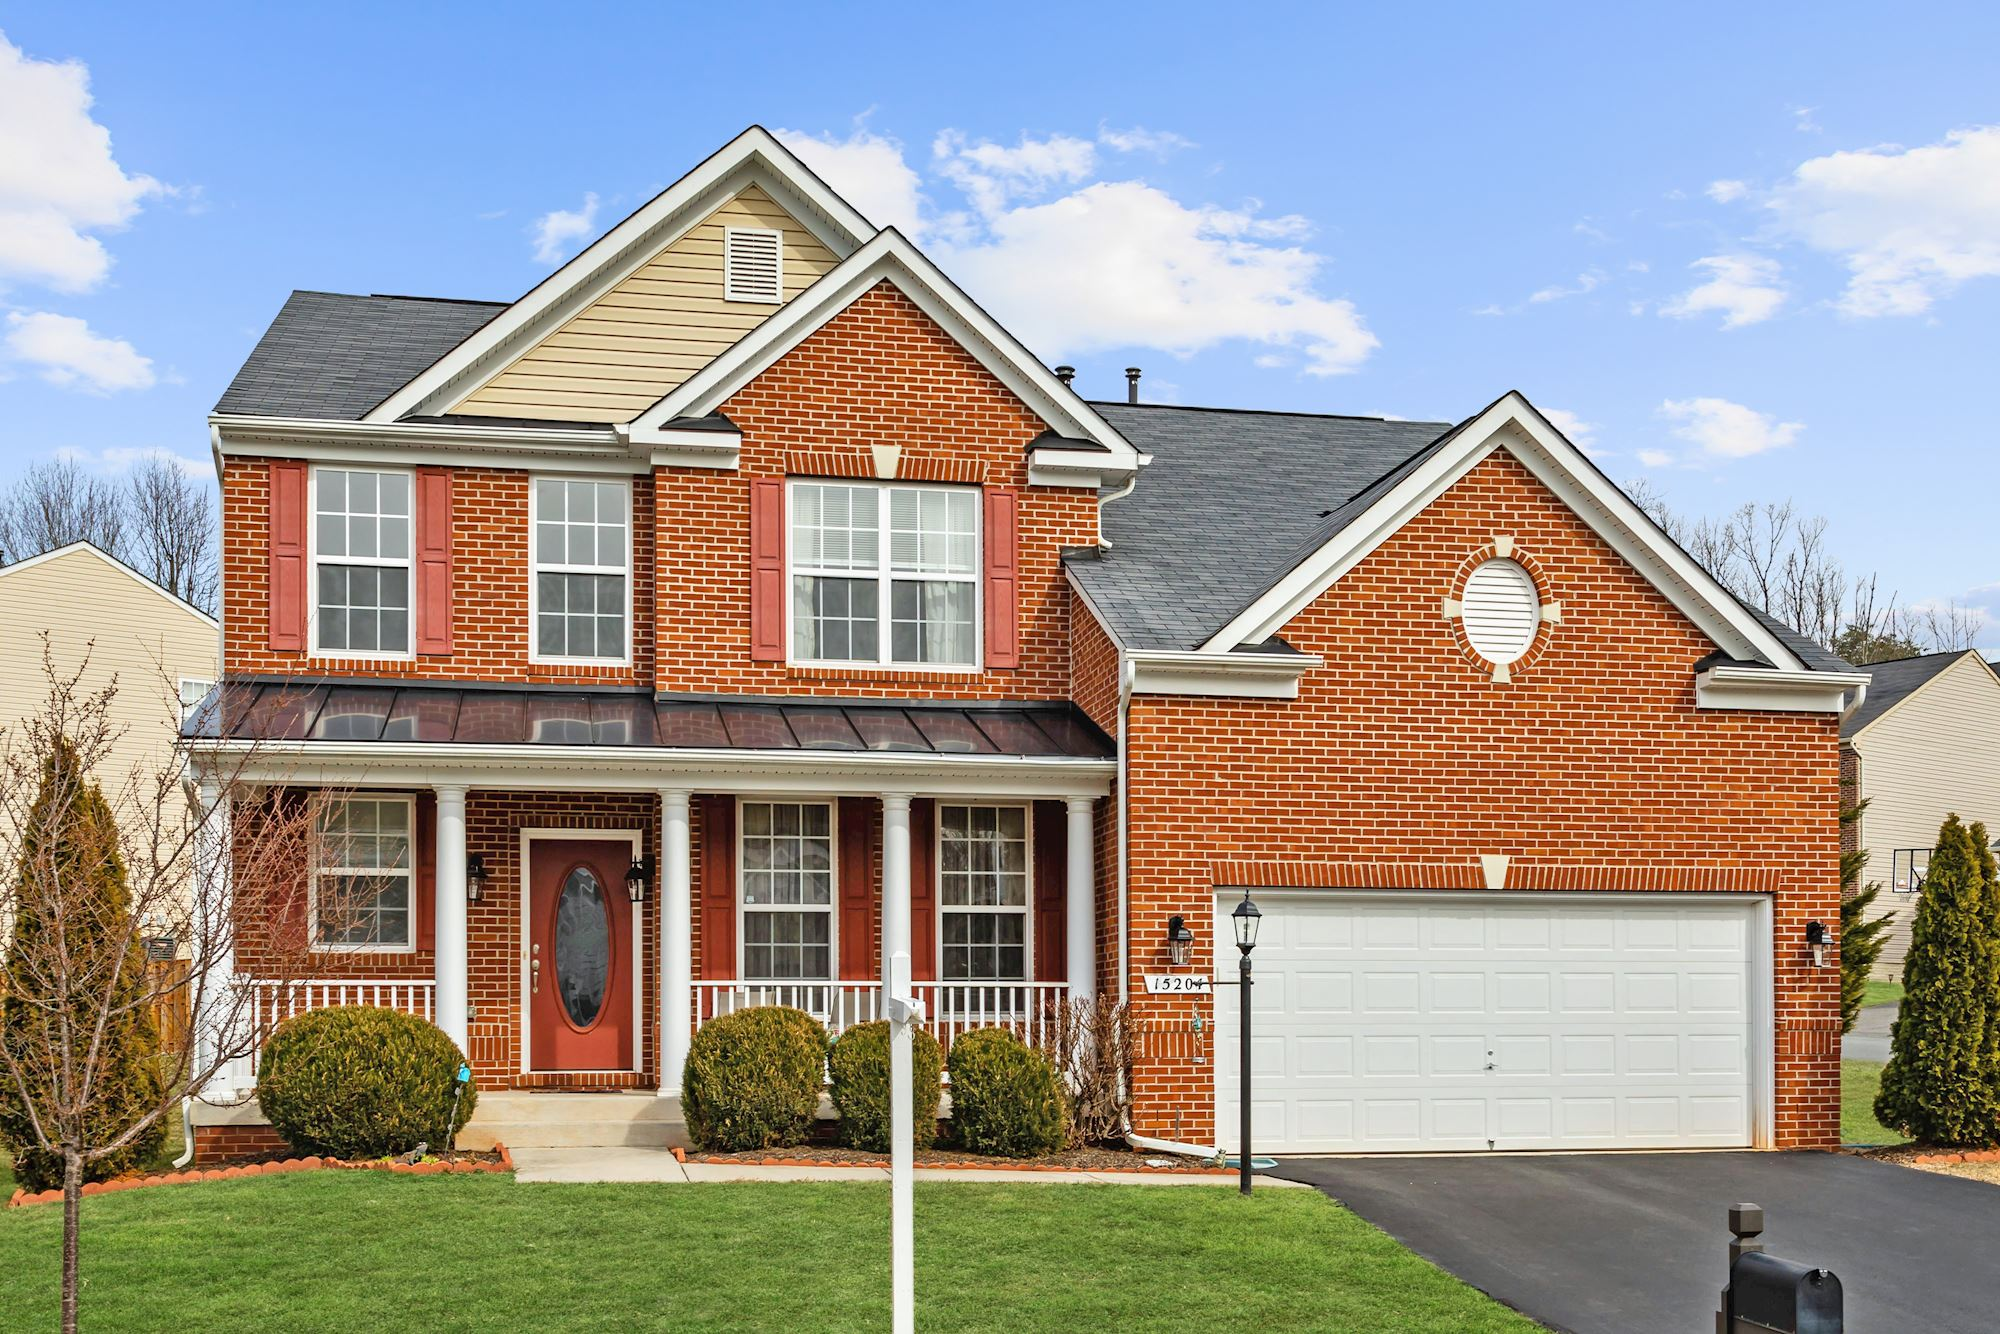 UNDER CONTRACT: Luxurious 3-Level Colonial Gainesville, VA Home